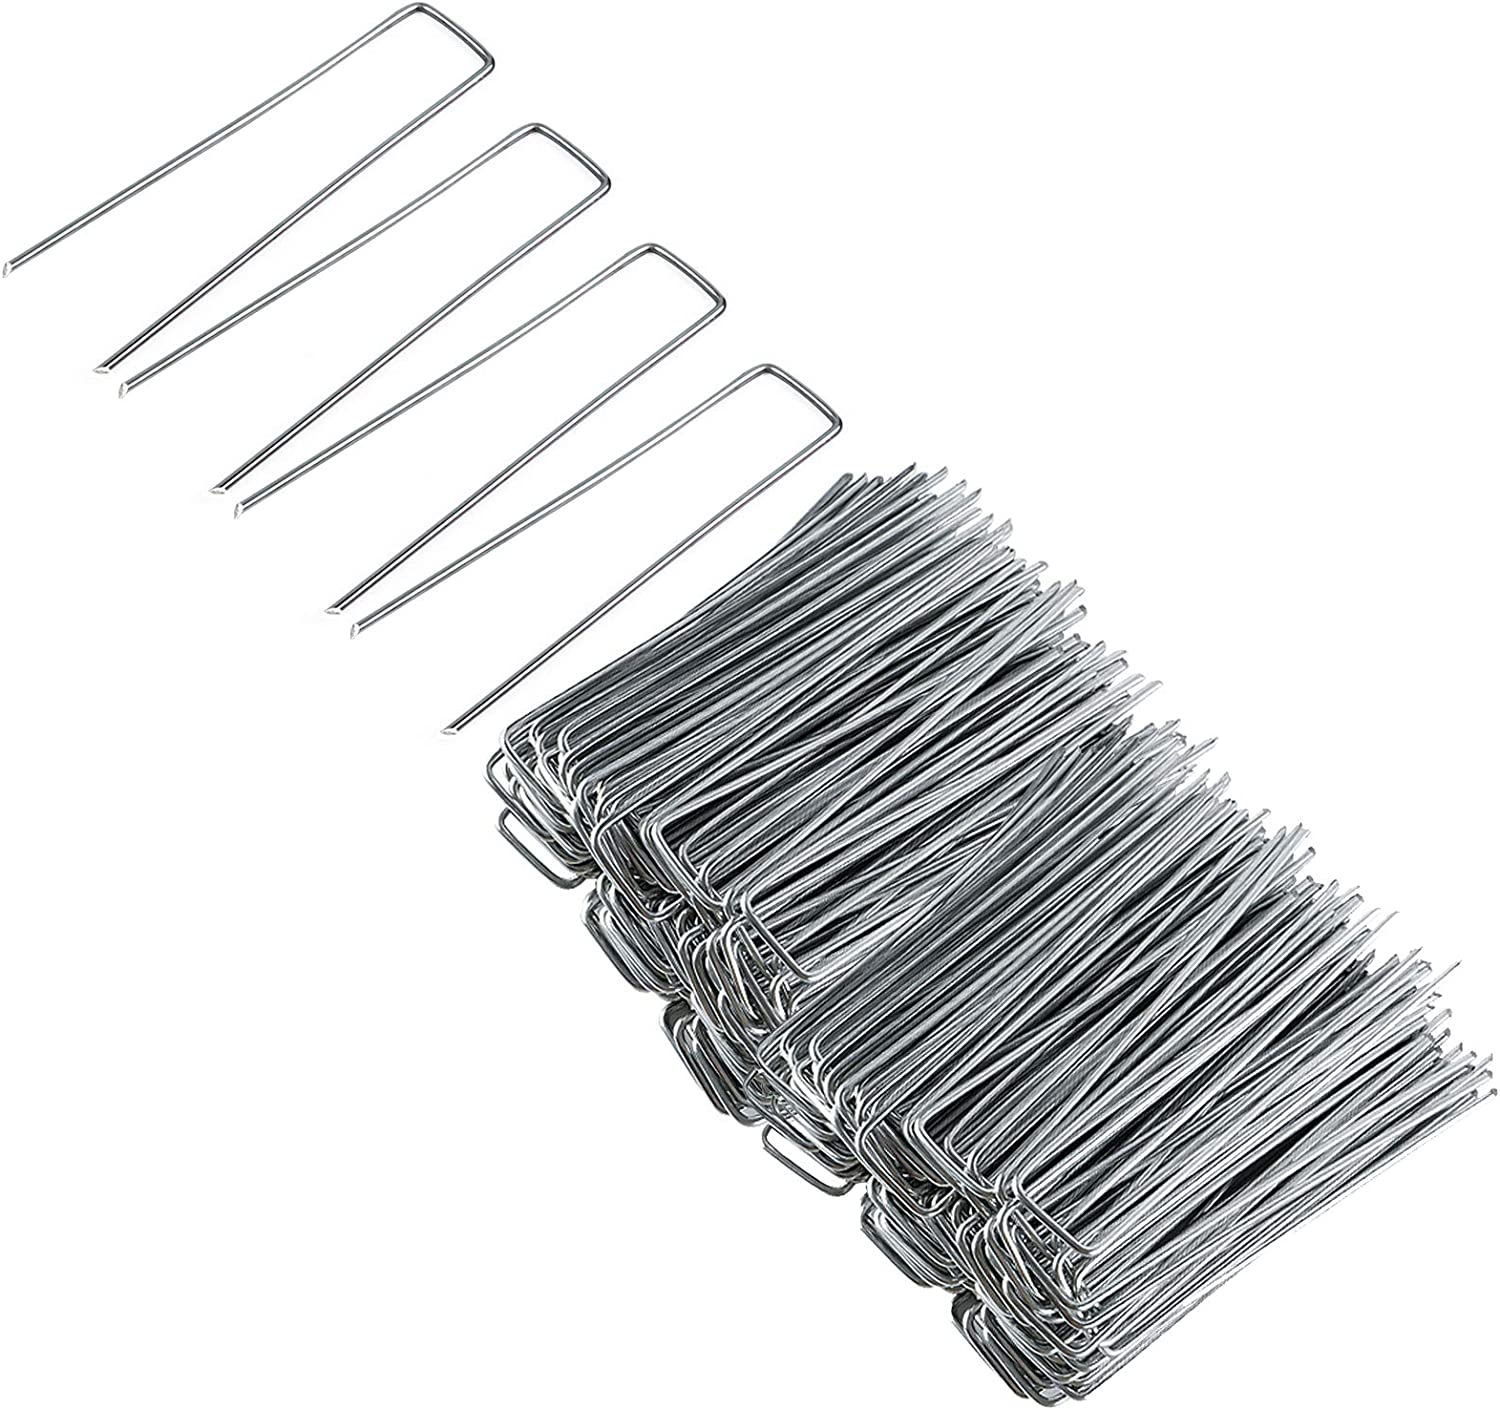 Gtongoko Garden Landscape Fabric Staples 6in 11 Gauge Galvanized Garden Stakes Ground U Shaped Heavy Duty Landscape Pins Ground Cover (6 inch 100 Pack)